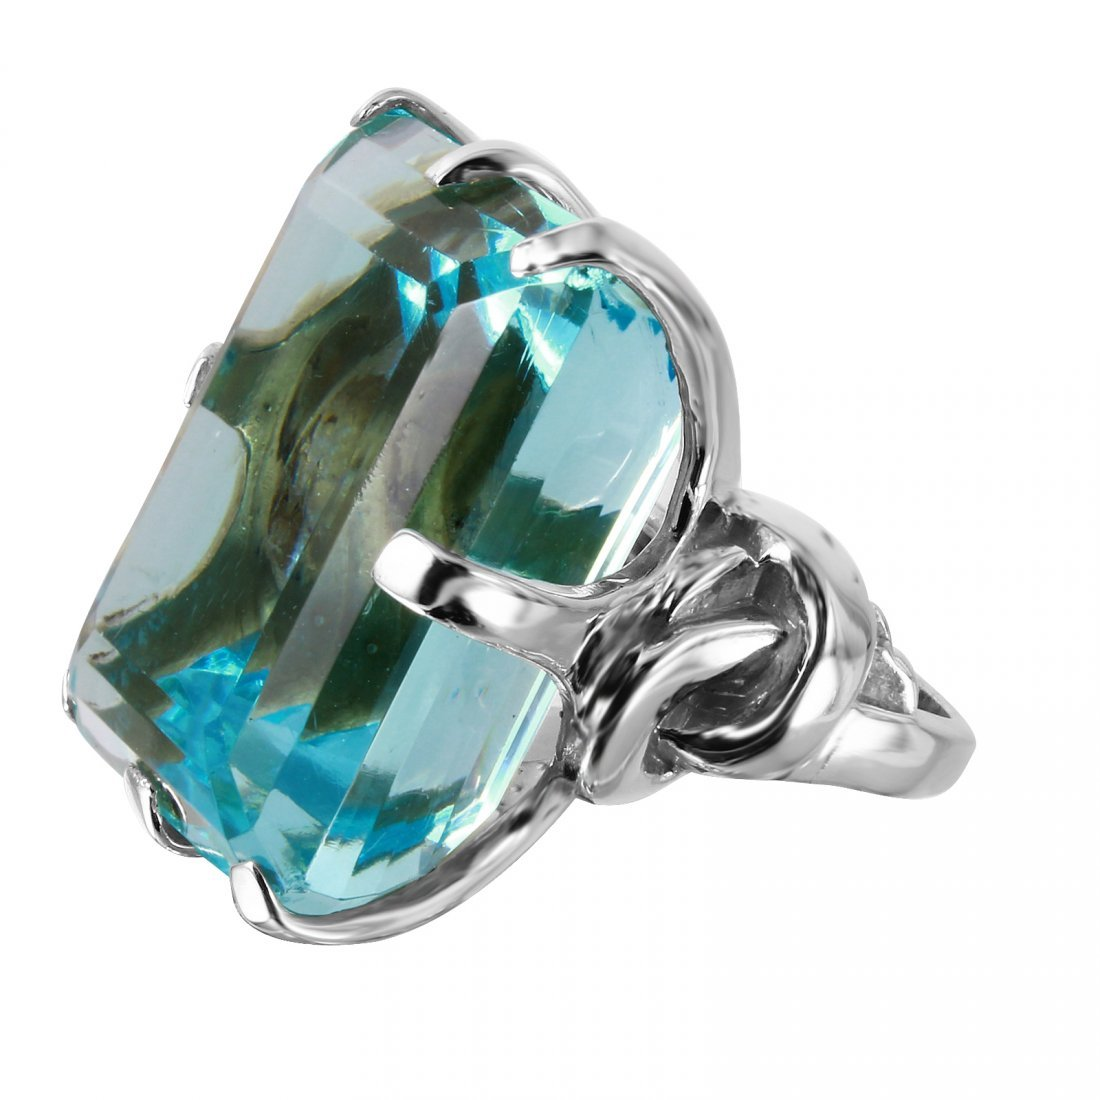 Aquamarine Sterling Silver Cocktail Ring, Size 6 - 4